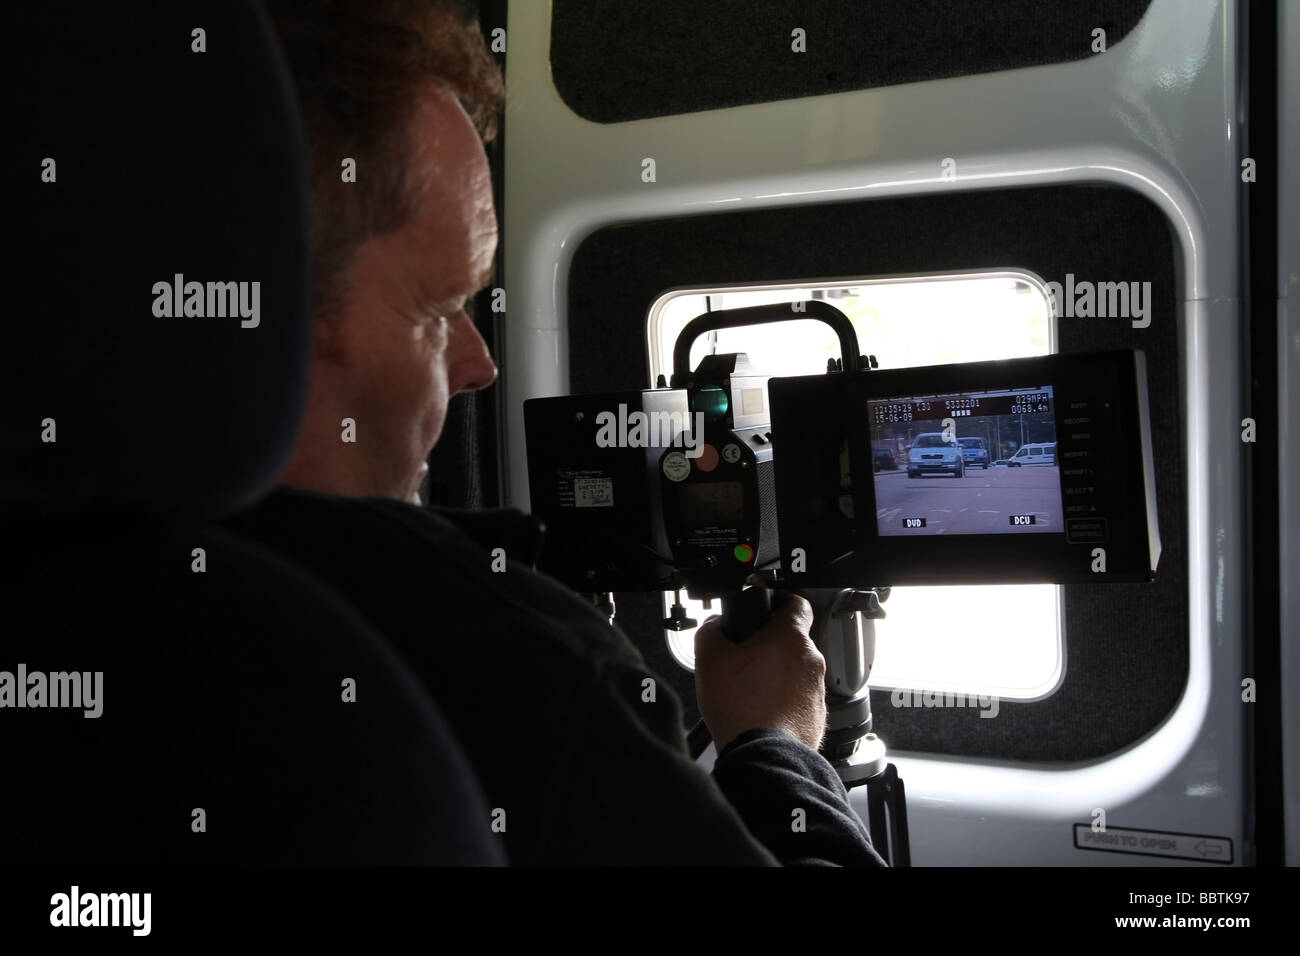 The operator's view from inside a Safety camera van in Aberdeen, Scotland, UK with traffic visible on the camera - Stock Image